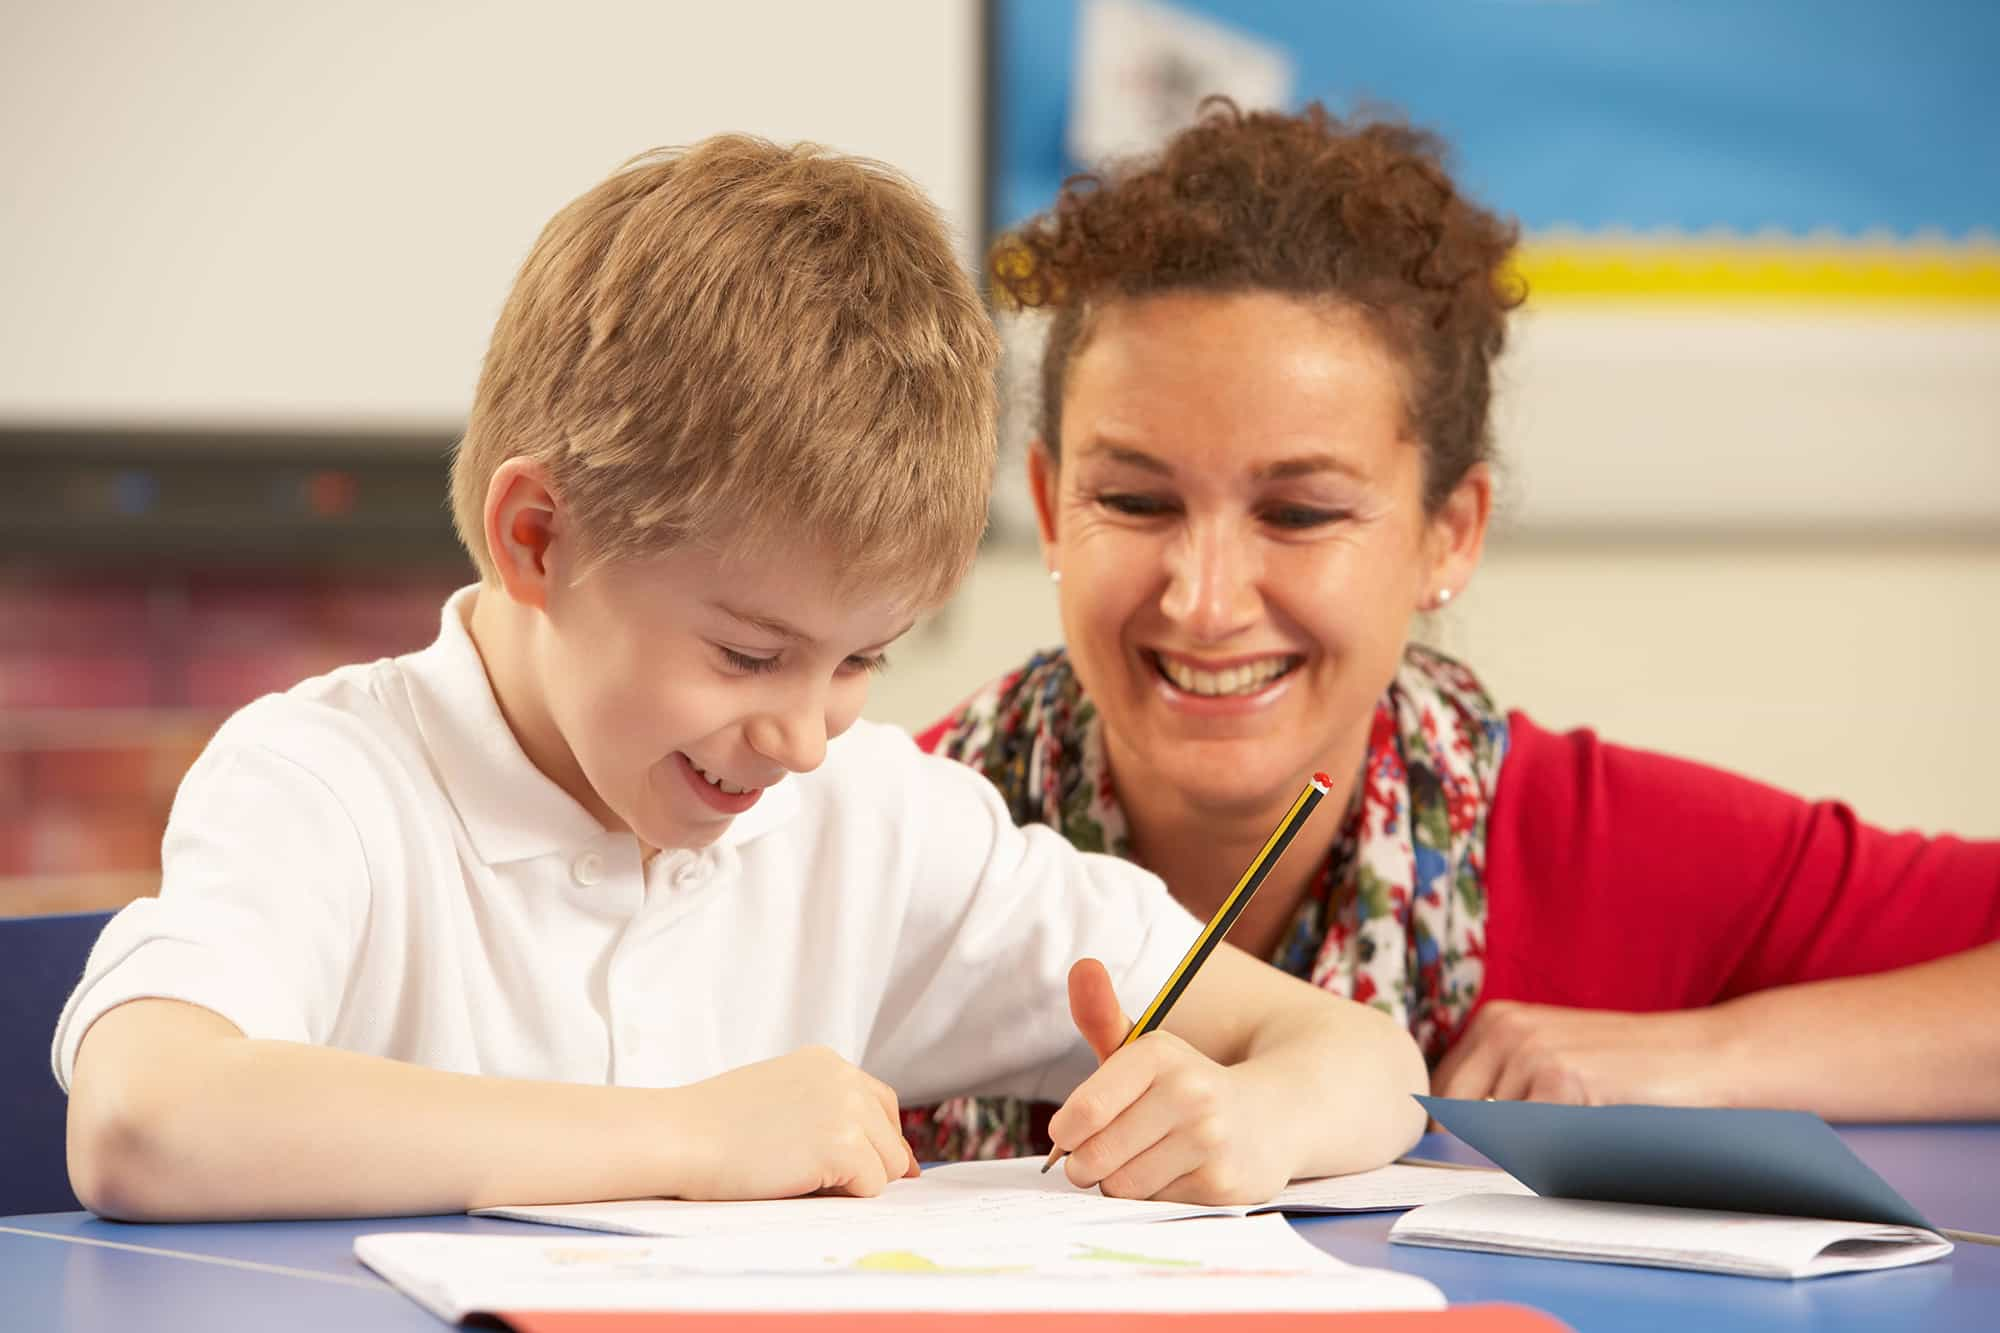 Volunteer in school with numeracy using creative activities to help primary school child gain skills and confidence in maths.